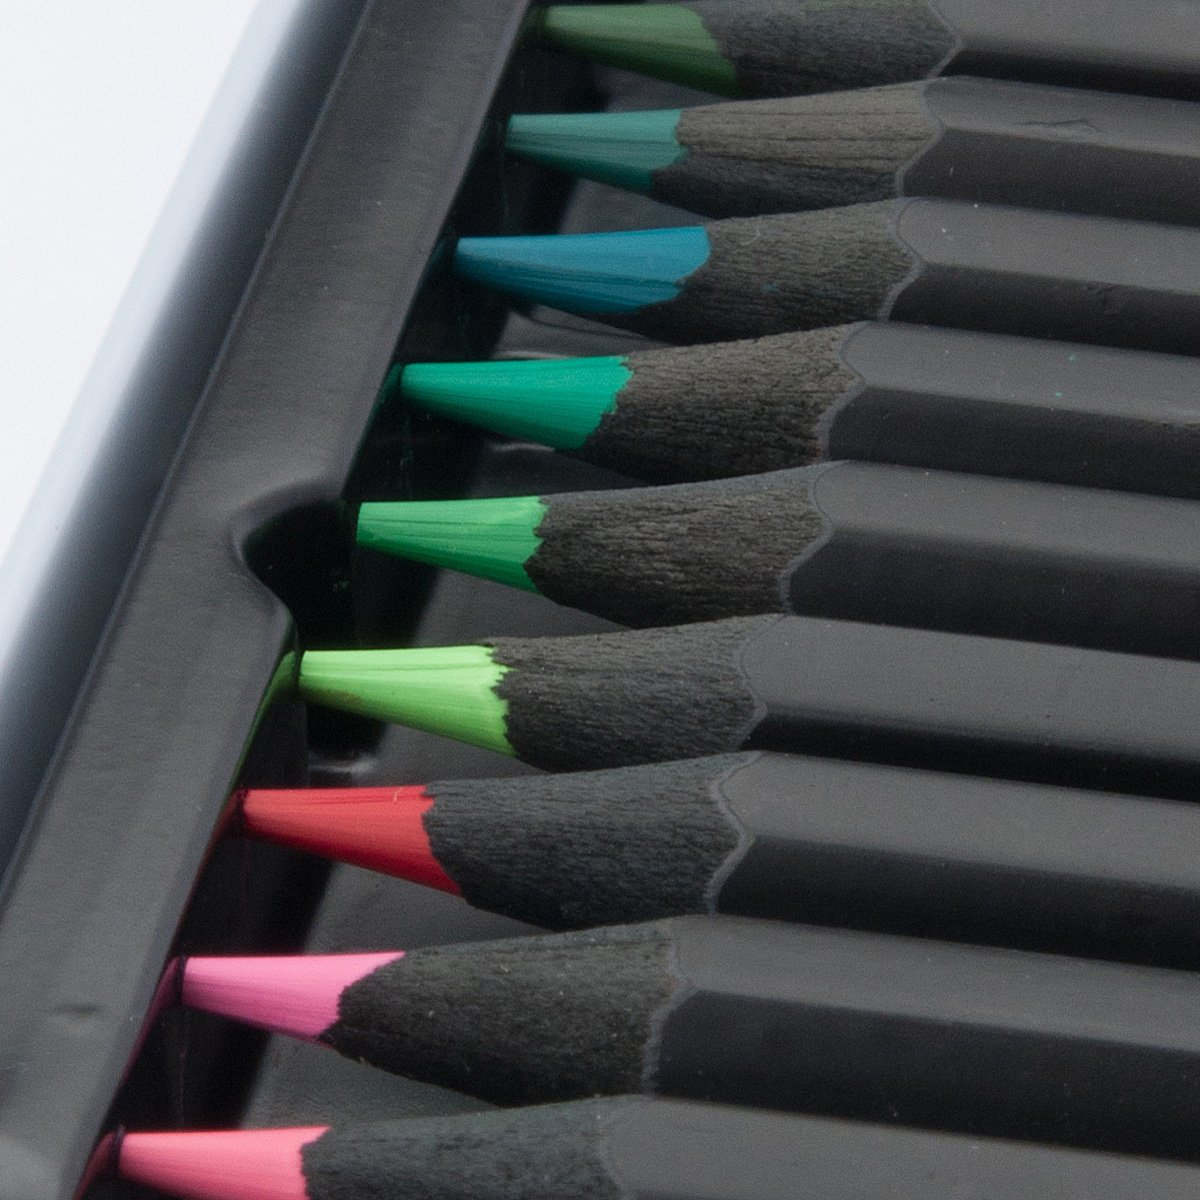 Black Widow Colored Pencils For Adults The Best Color Pencil Set